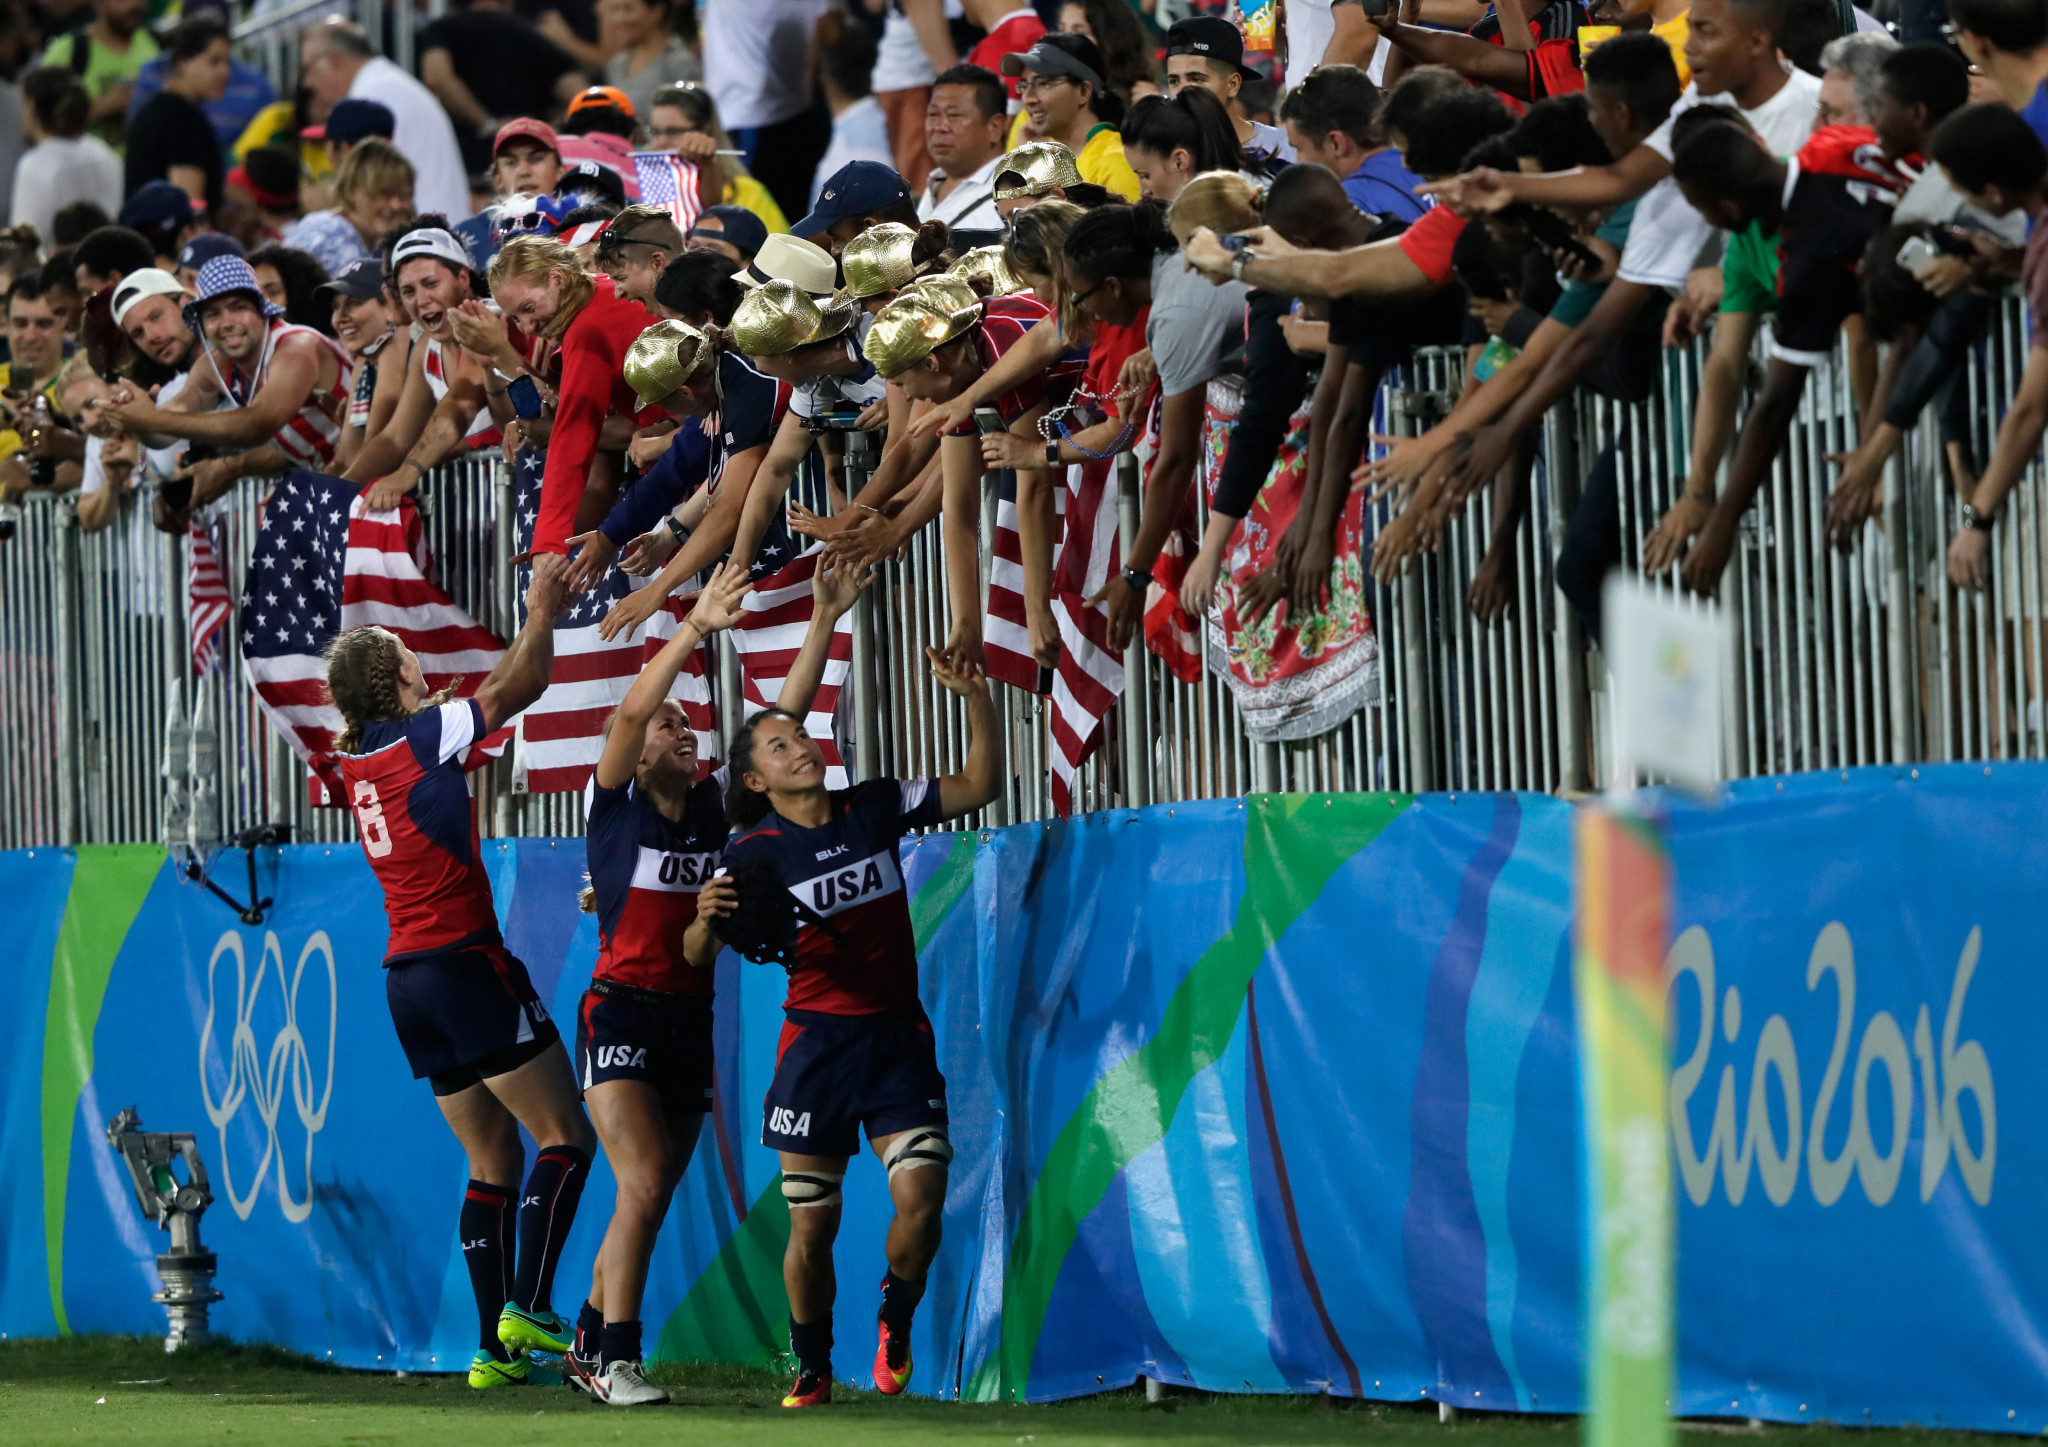 NOCs disappointed by decision to ban overseas fans at Tokyo 2020